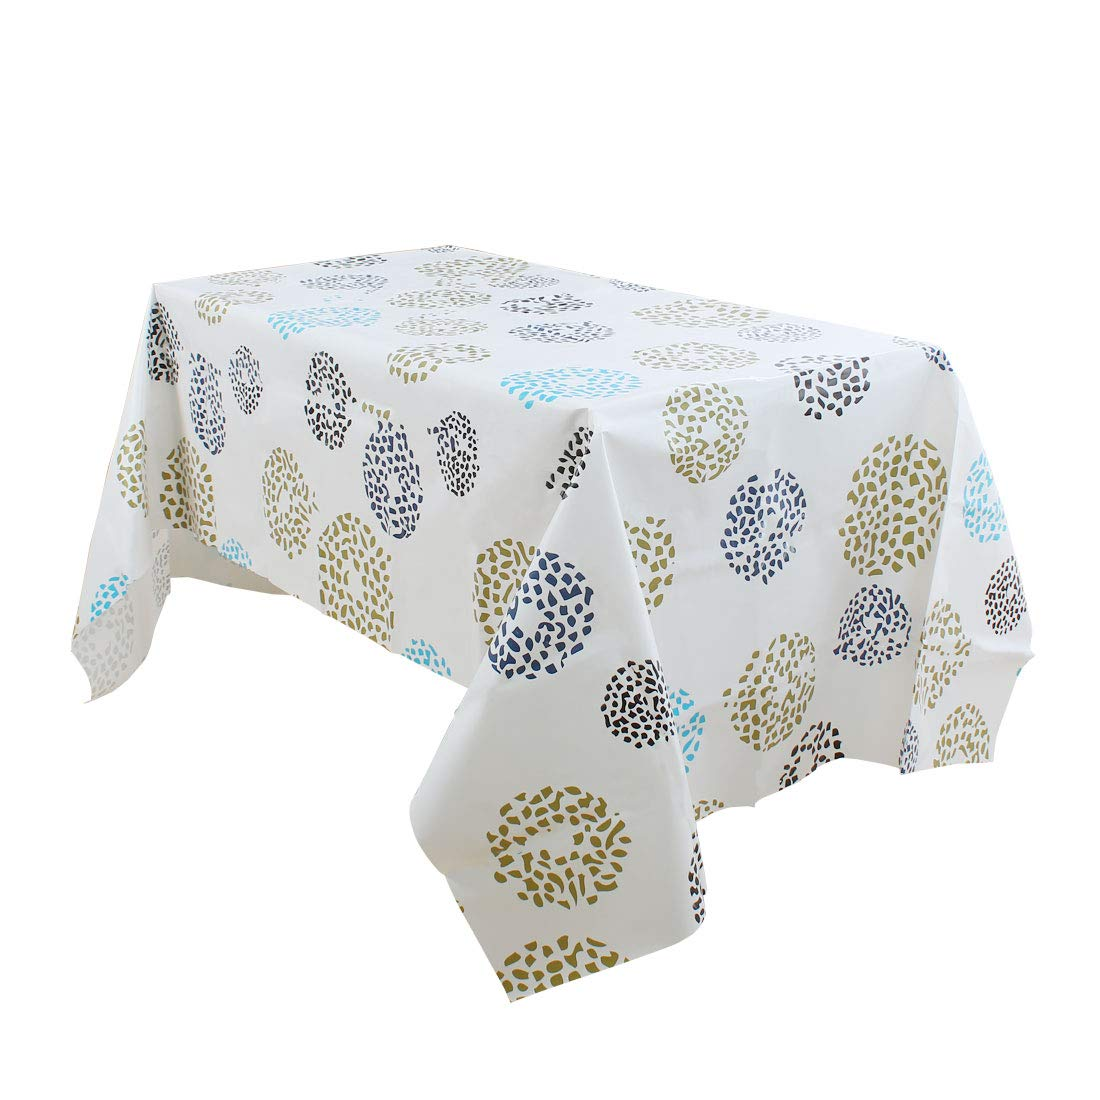 uxcell Vinyl Rectangle Table Cover Wipe Clean PVC Tablecloth Oil-Proof/Waterproof Stain-Resistant - 55 x 55 Inch (Colored Circles)